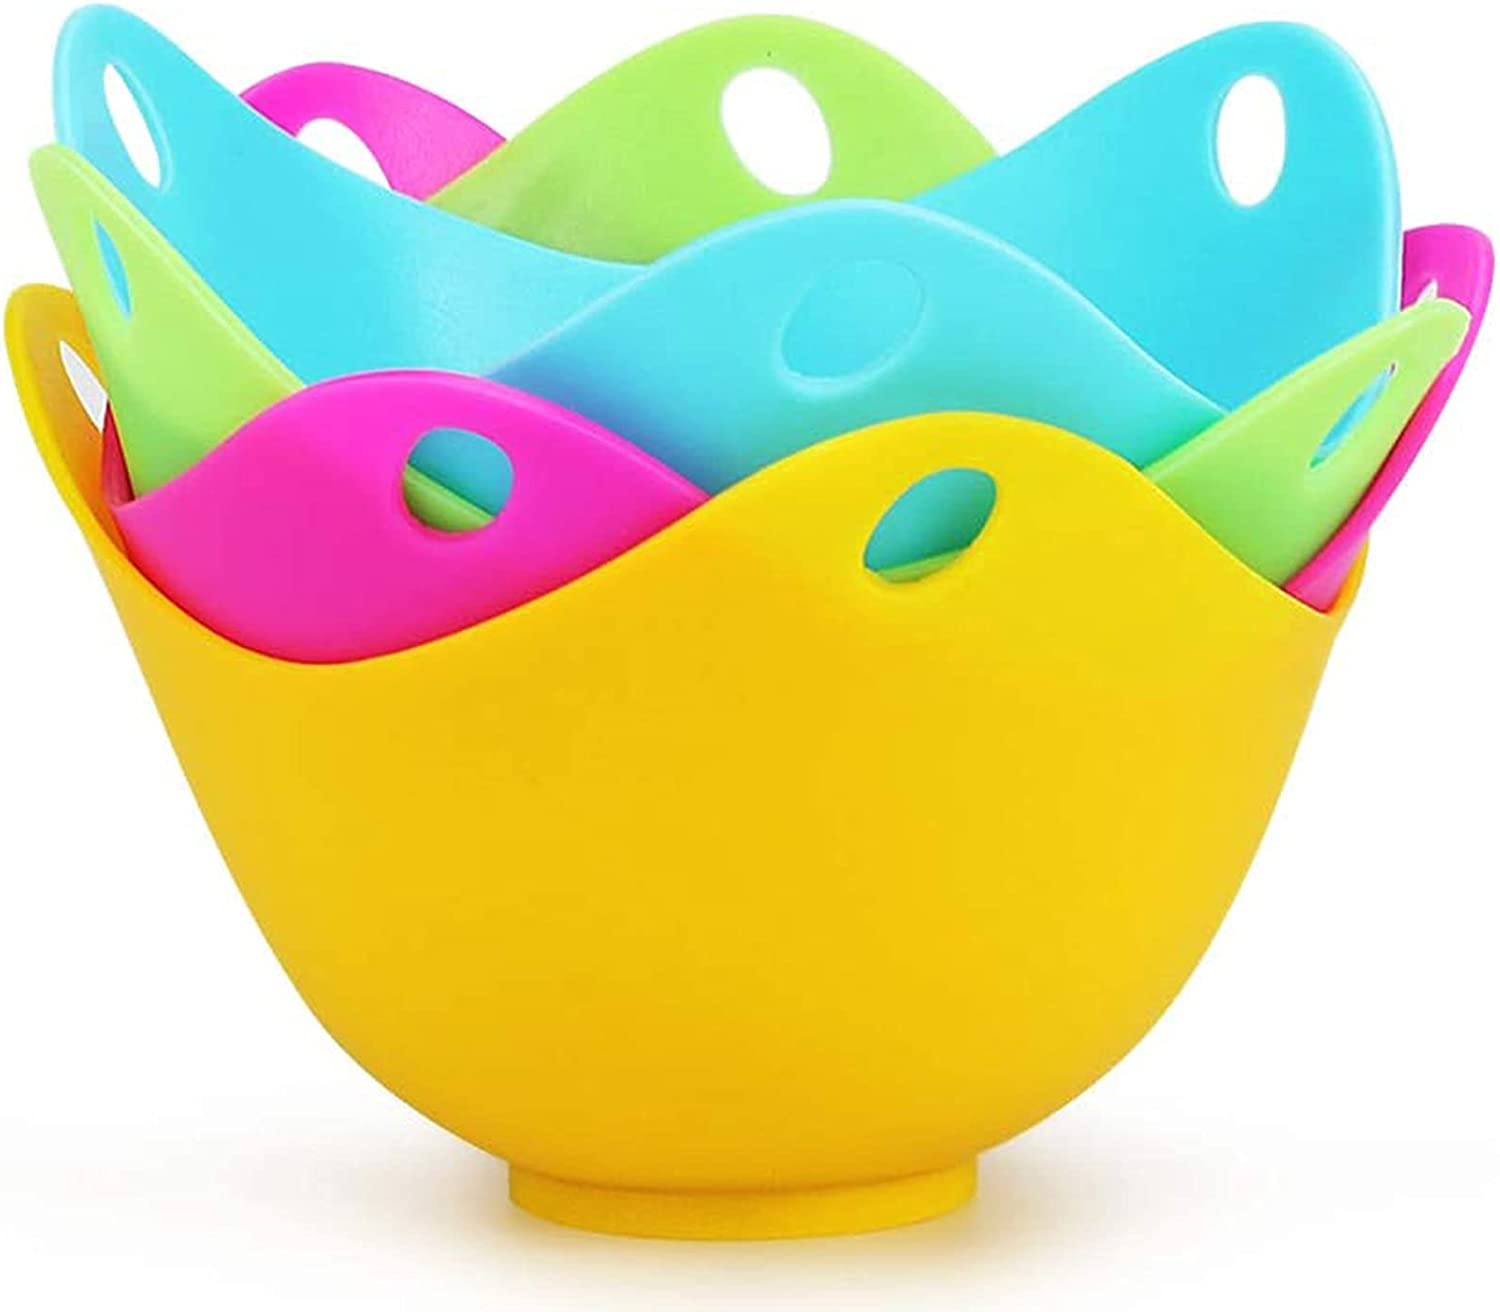 Egg Poacher Poached Egg Cooker Silicone Egg Poaching Cup Egg Cups Egg Bites Molds Egg Cookware for Microwave Stovetop Premium 4PCS